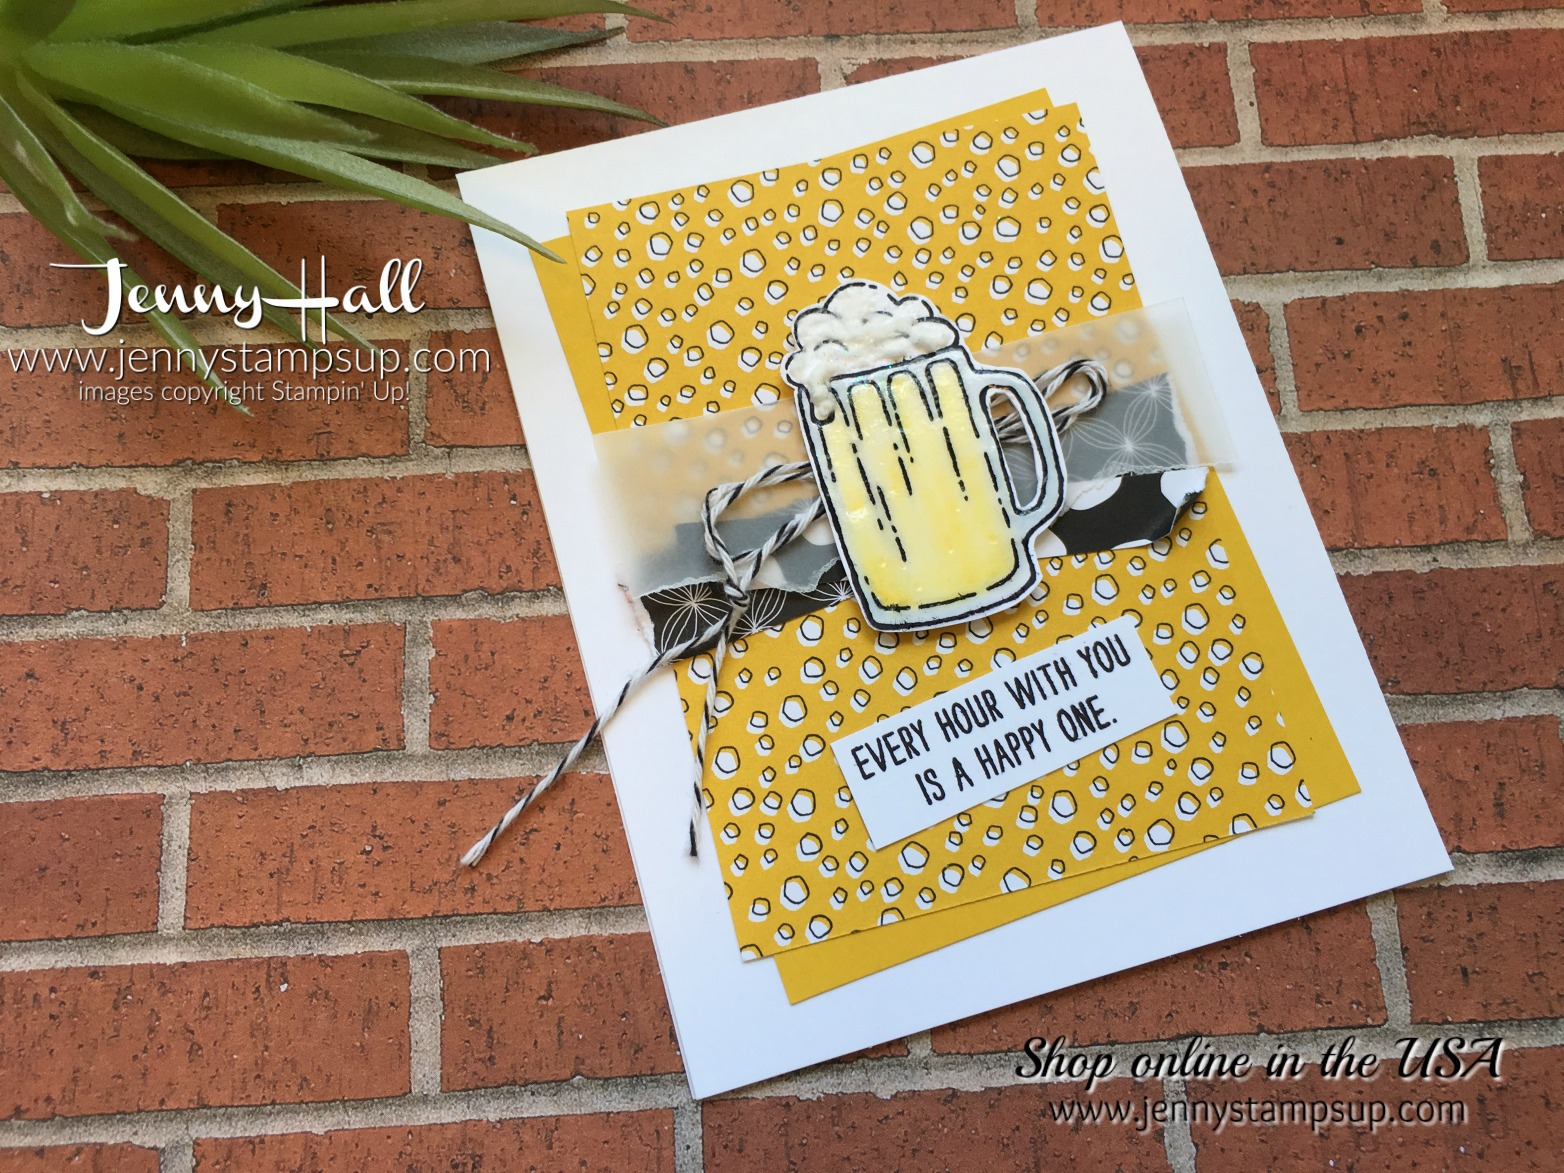 mixed drinks stamp set by Jenny Hall at www.jennystampsup.com